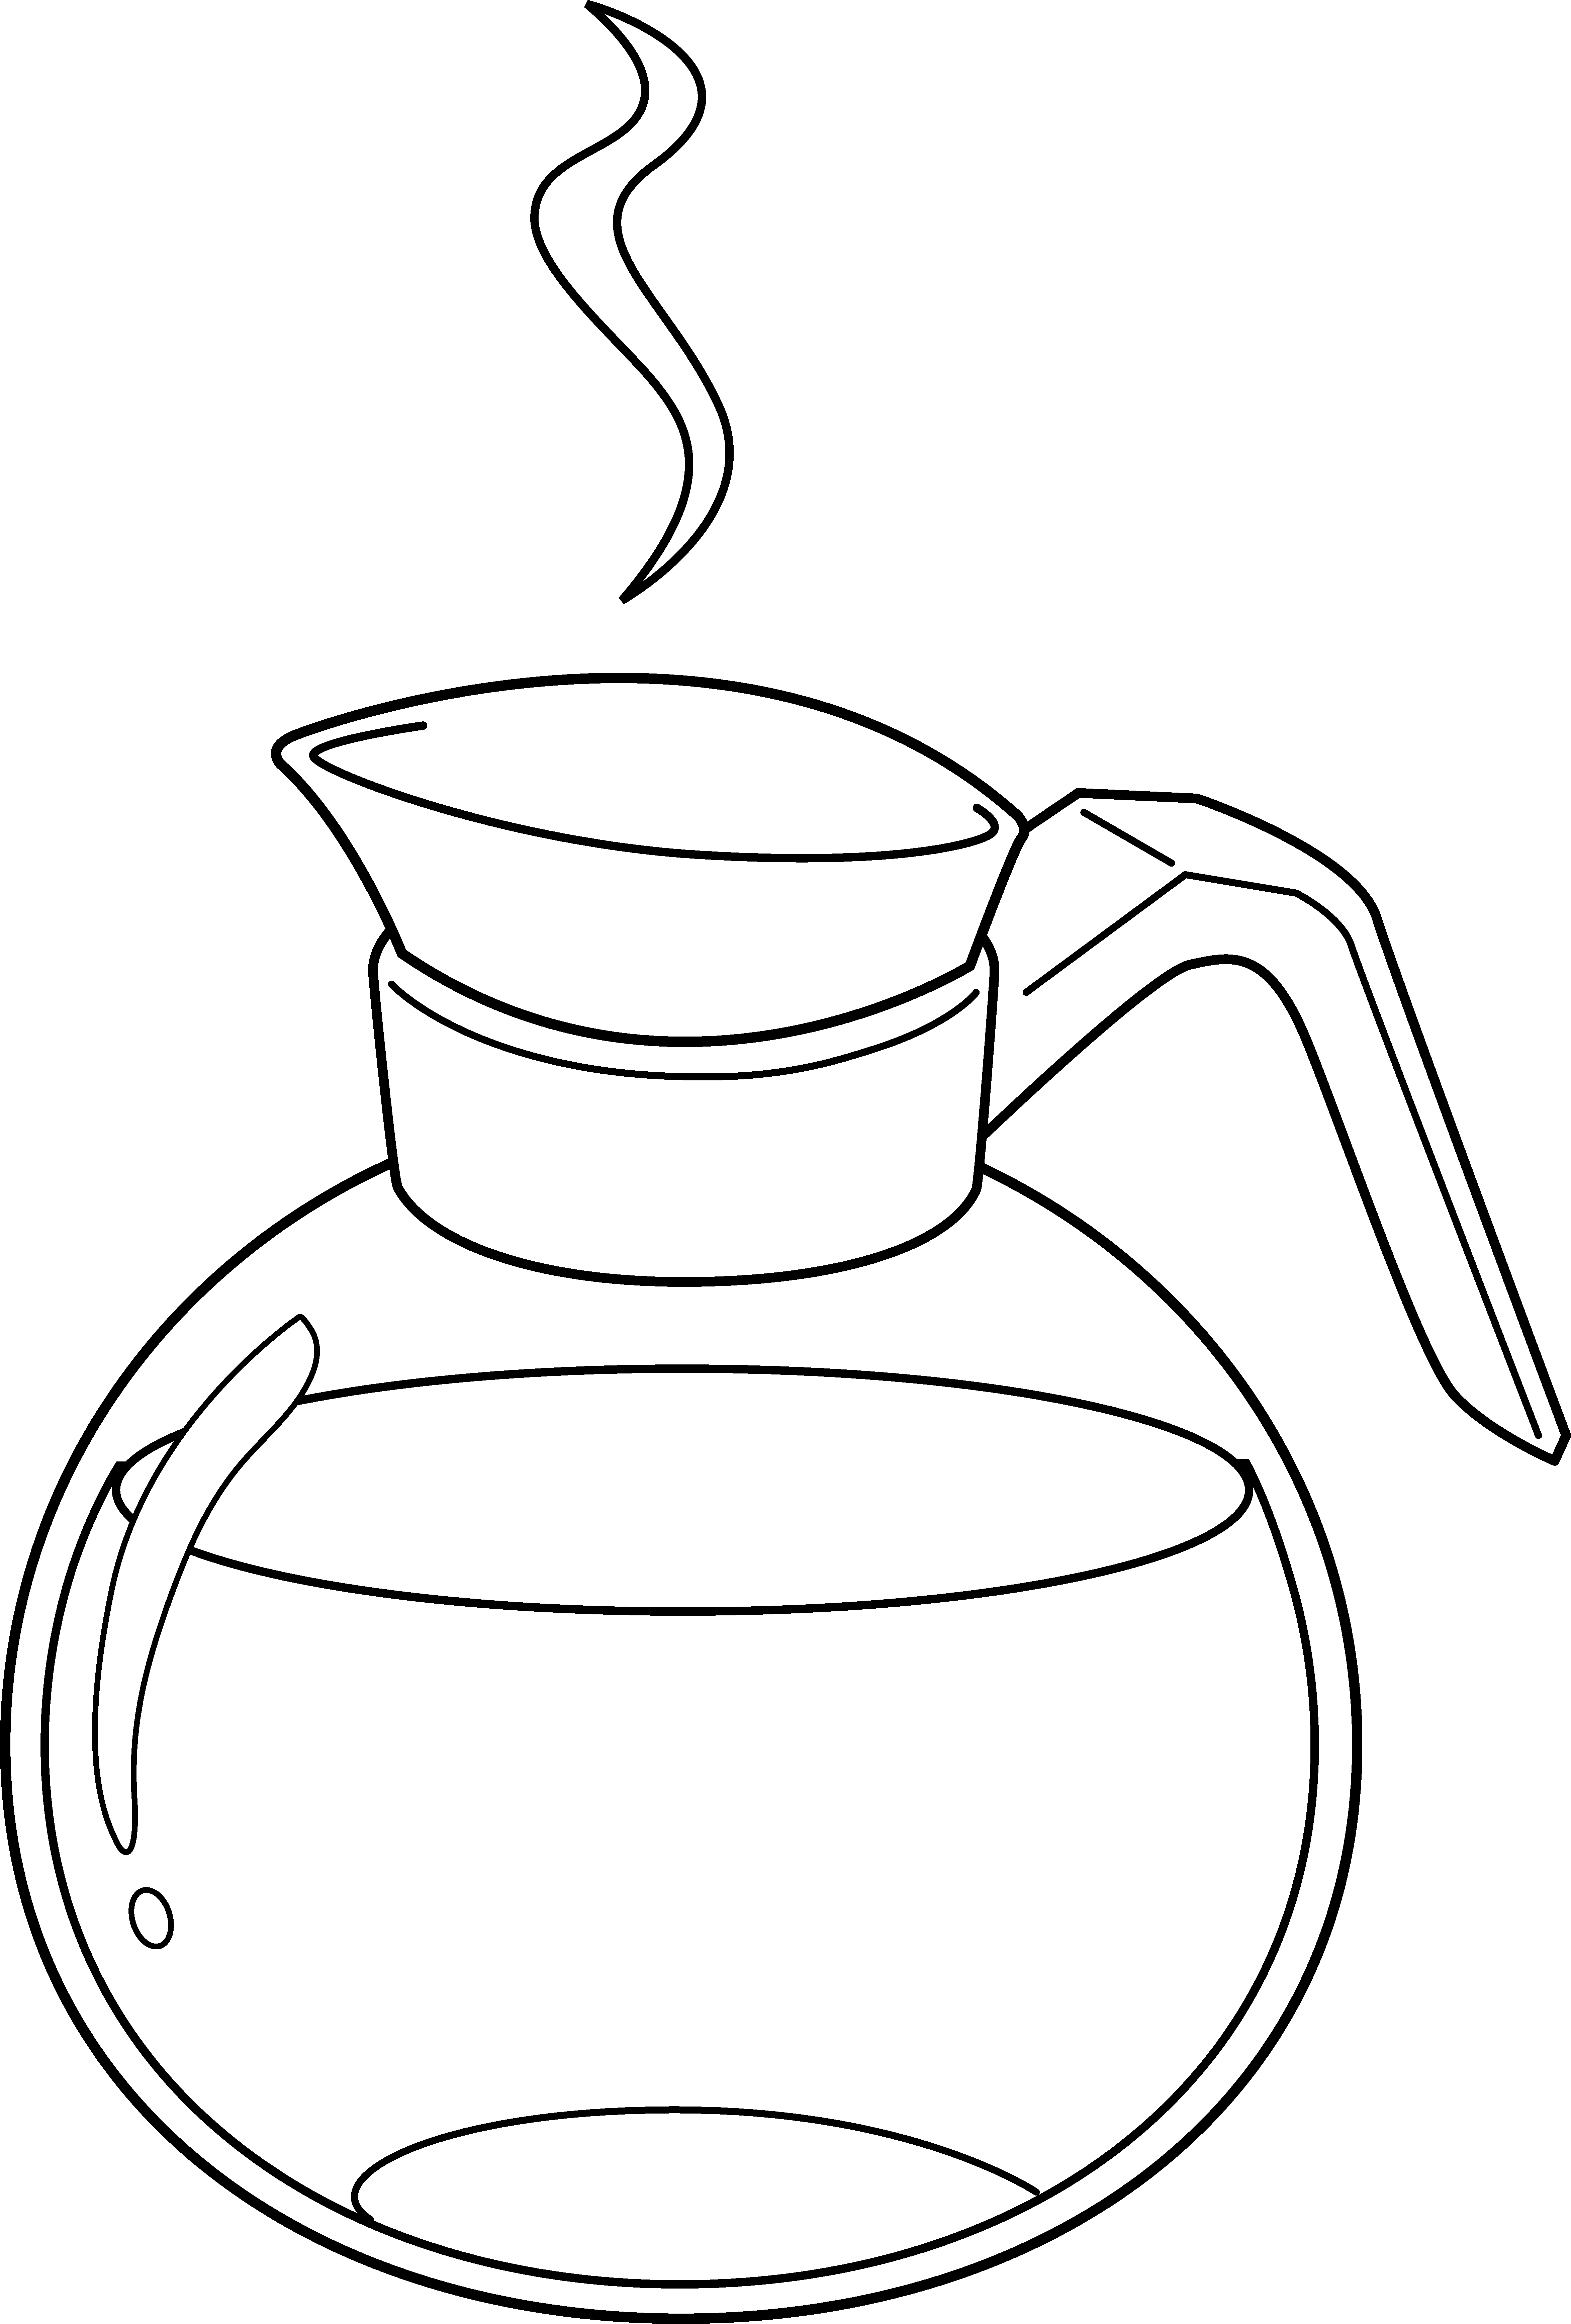 Coffee jugs clipart 20 free Cliparts | Download images on ...